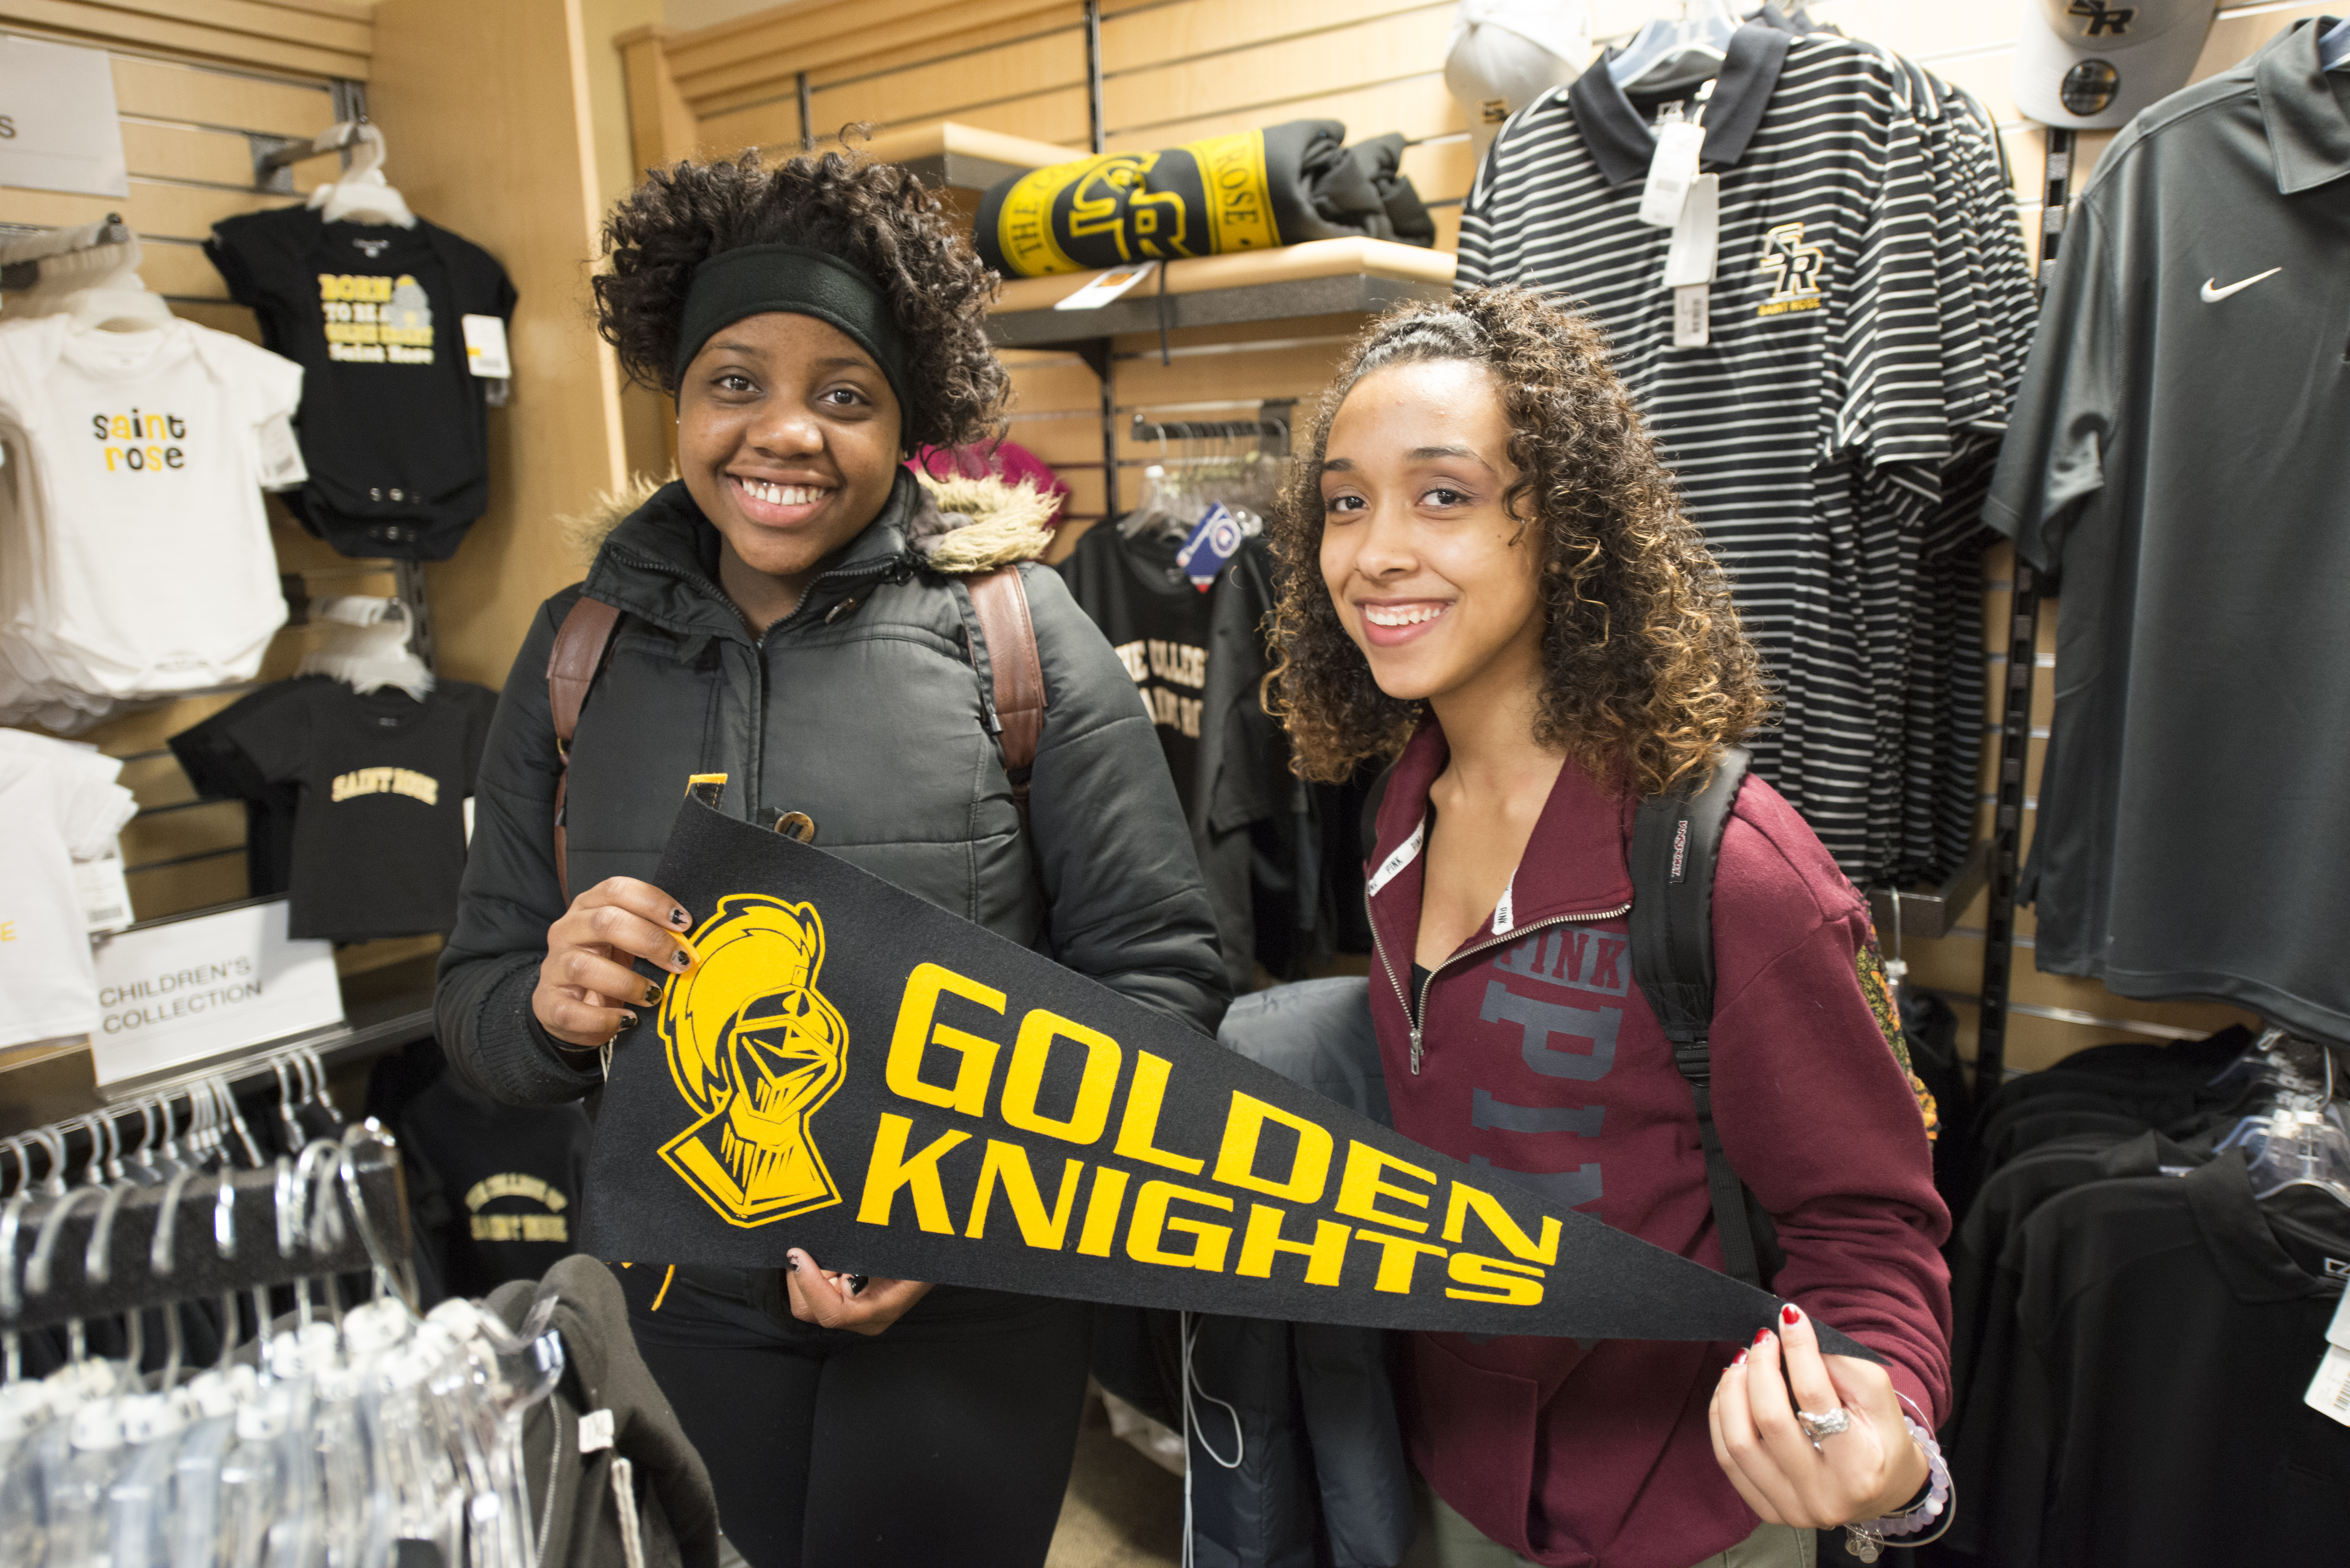 Two Girls holding flag at Saint Rose Bookstore